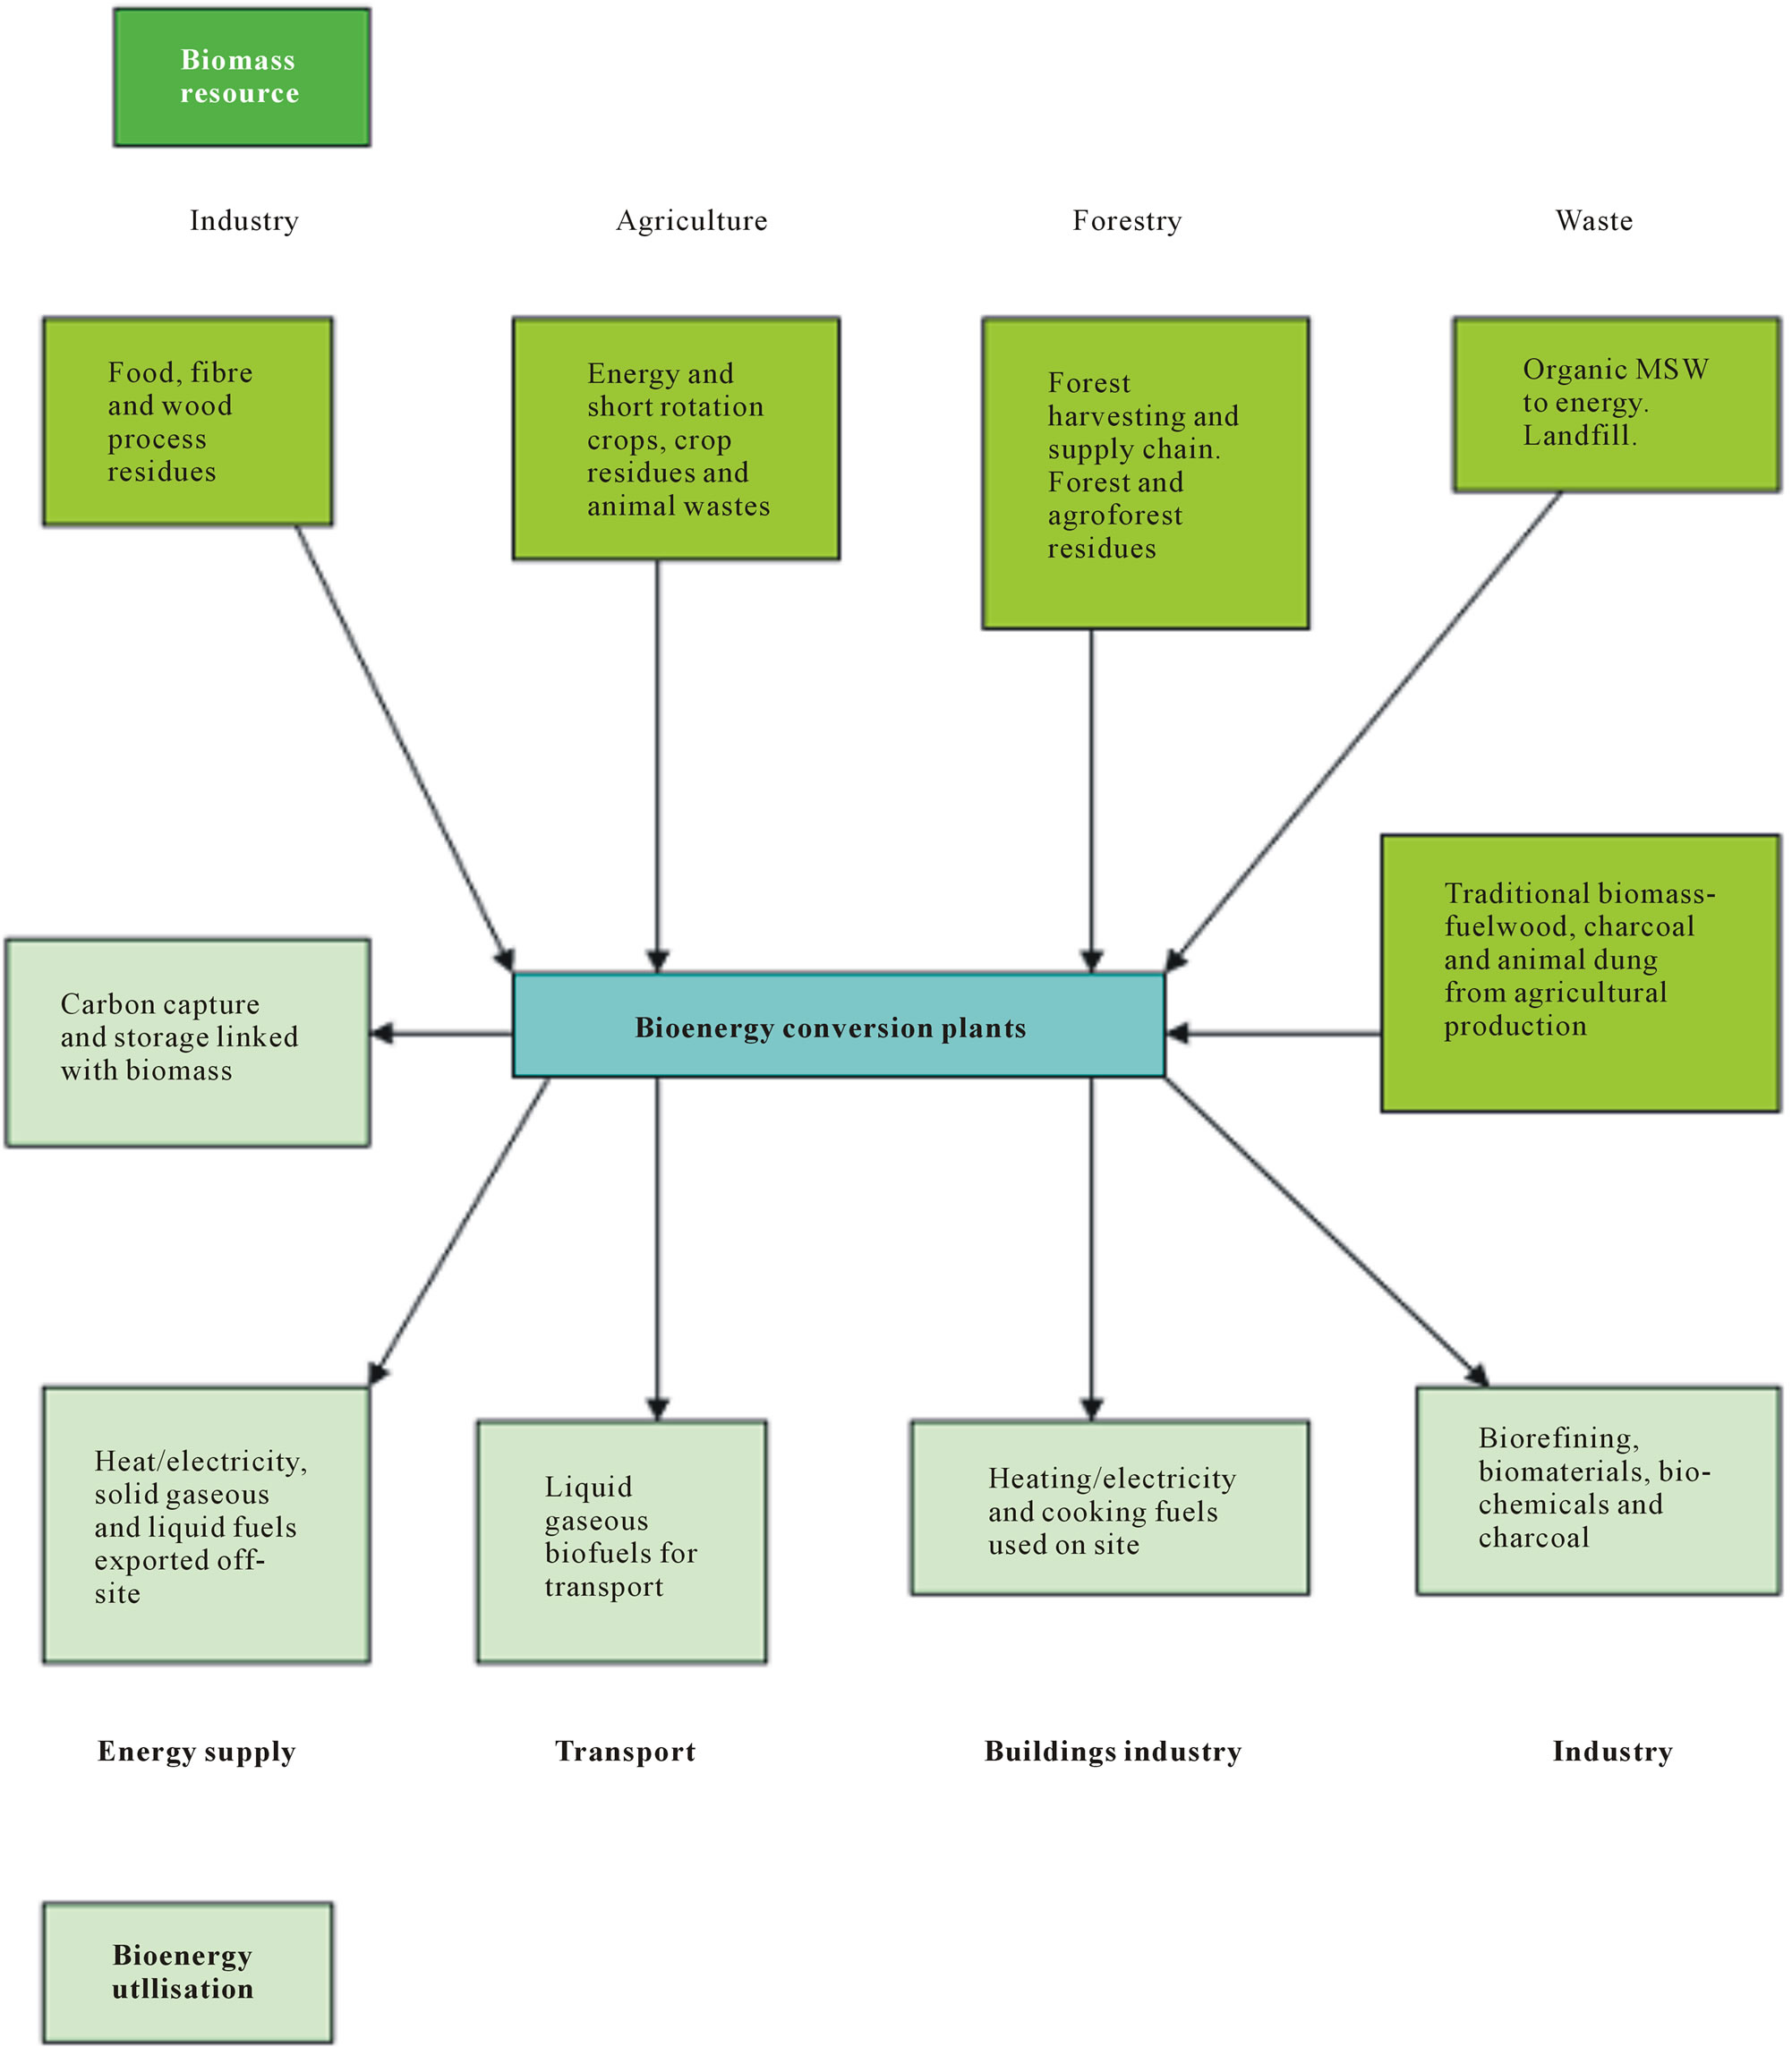 Biomass Energy Resources Utilisation And Waste Management